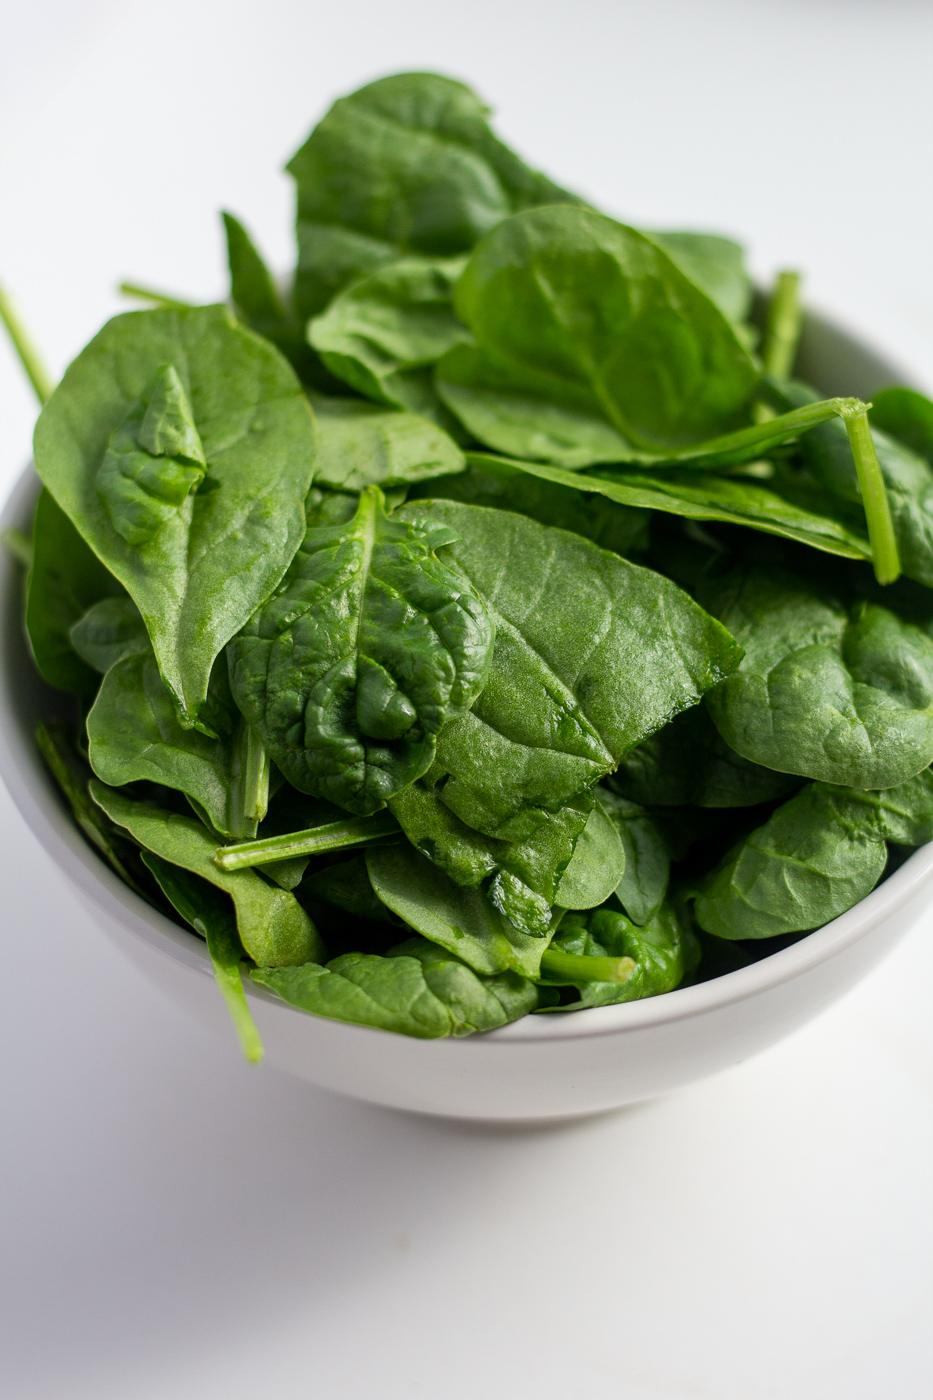 Meet Your Ingredients: Spinach